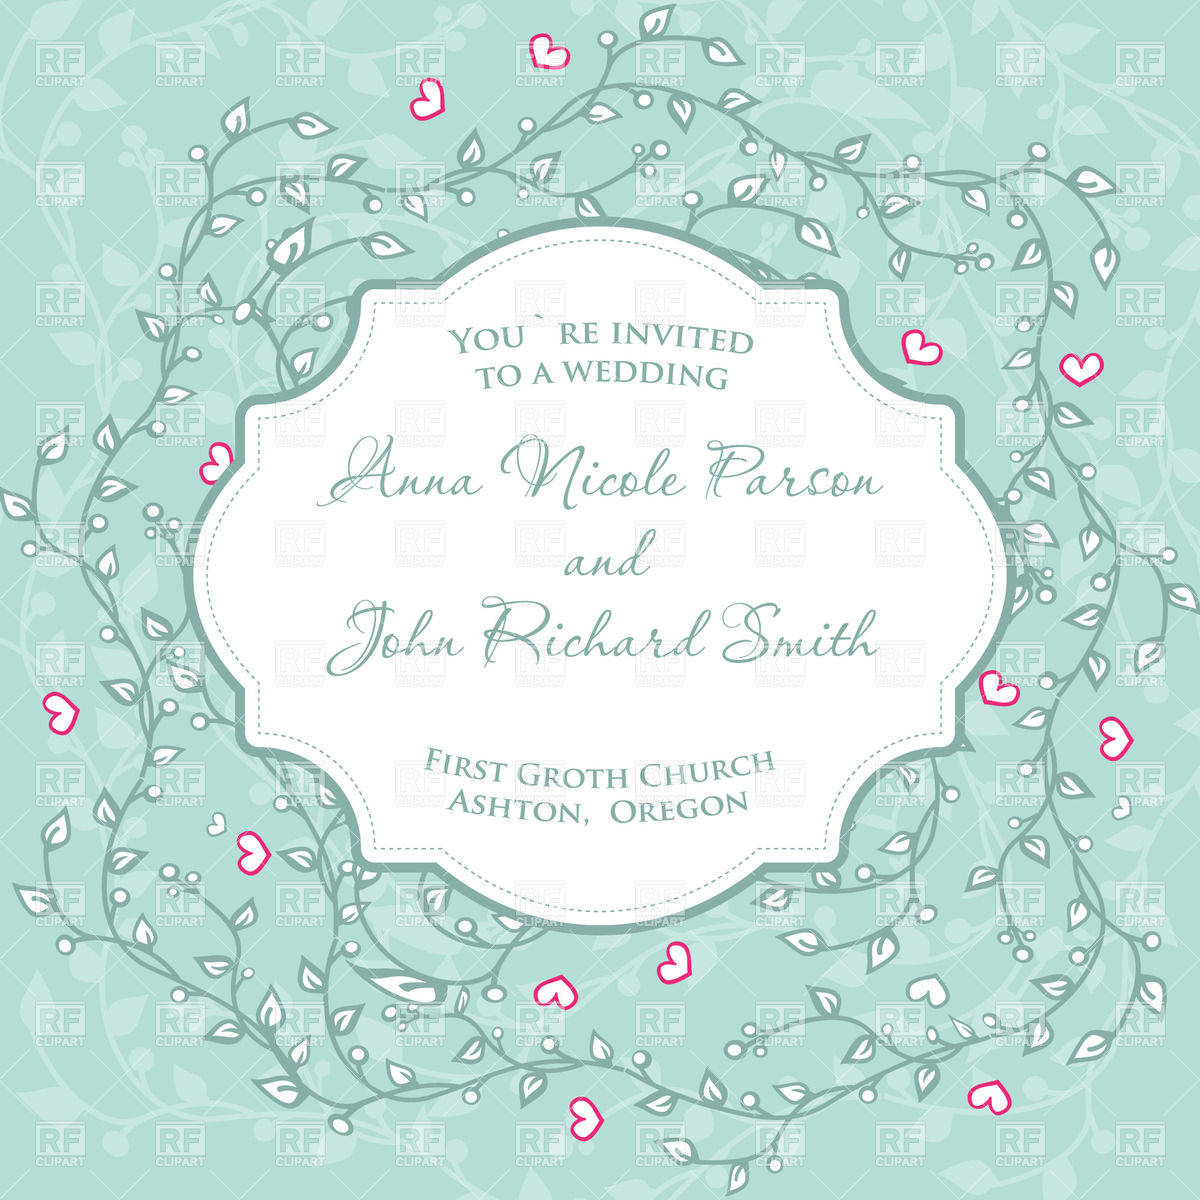 1200x1200 Wedding Invitation With Floral Ornament And Frame Vector Image